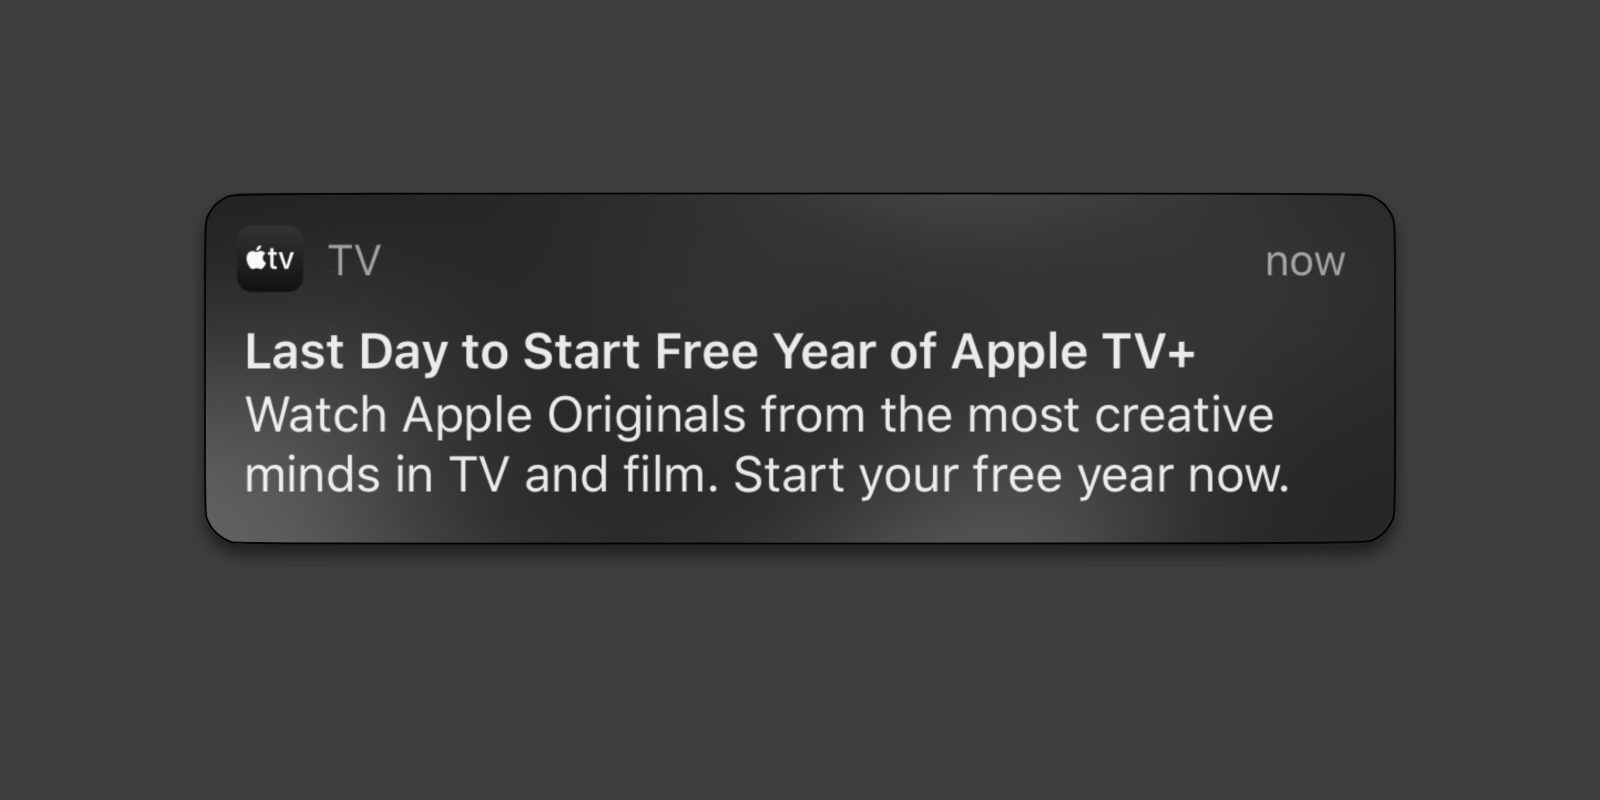 This could be your last chance to get a free year of Apple TV+